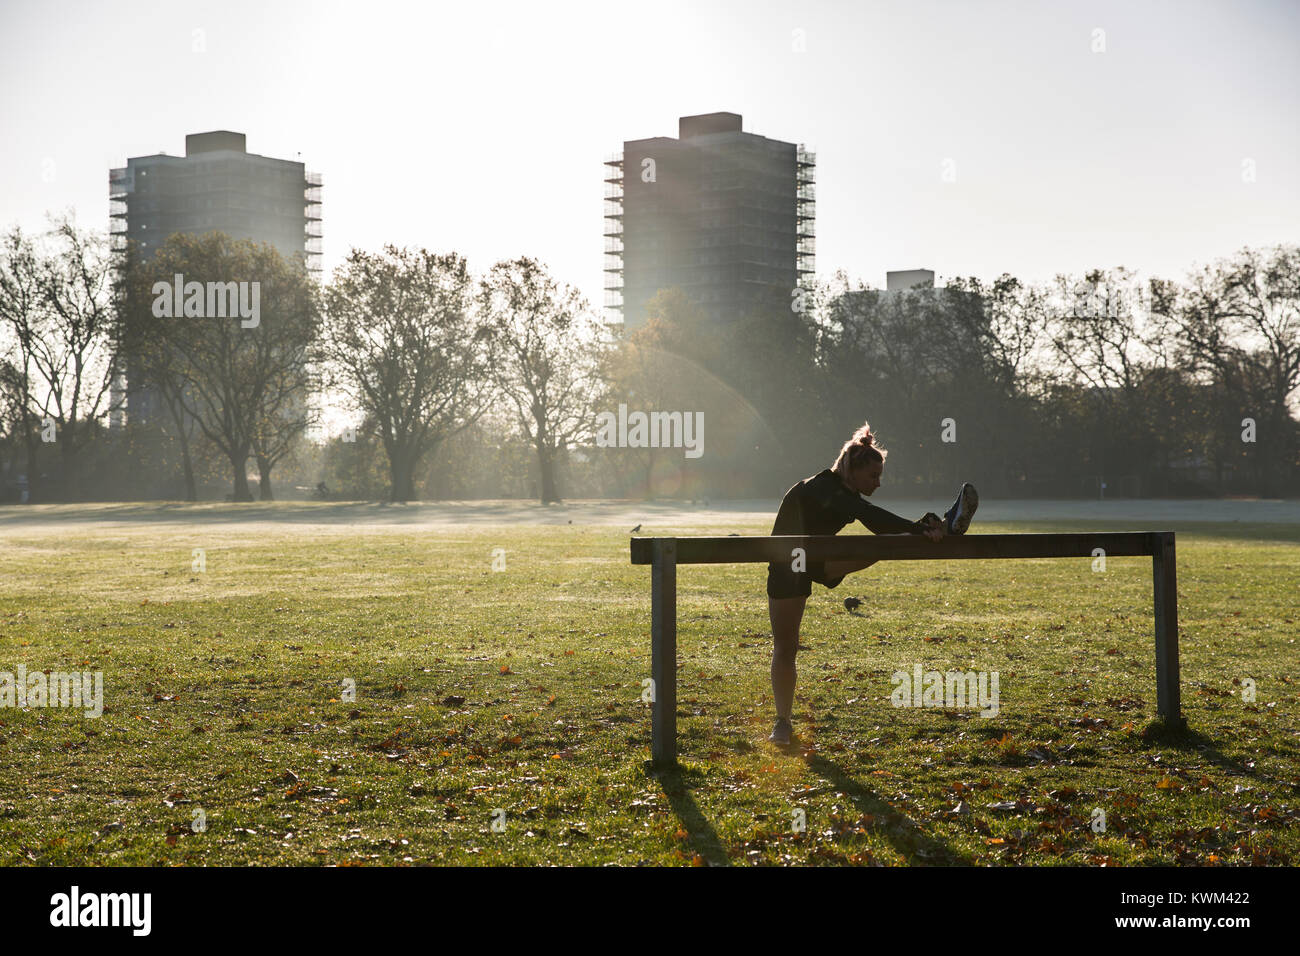 Full length of woman stretching leg on exercise equipment against buildings at park during sunny day - Stock Image